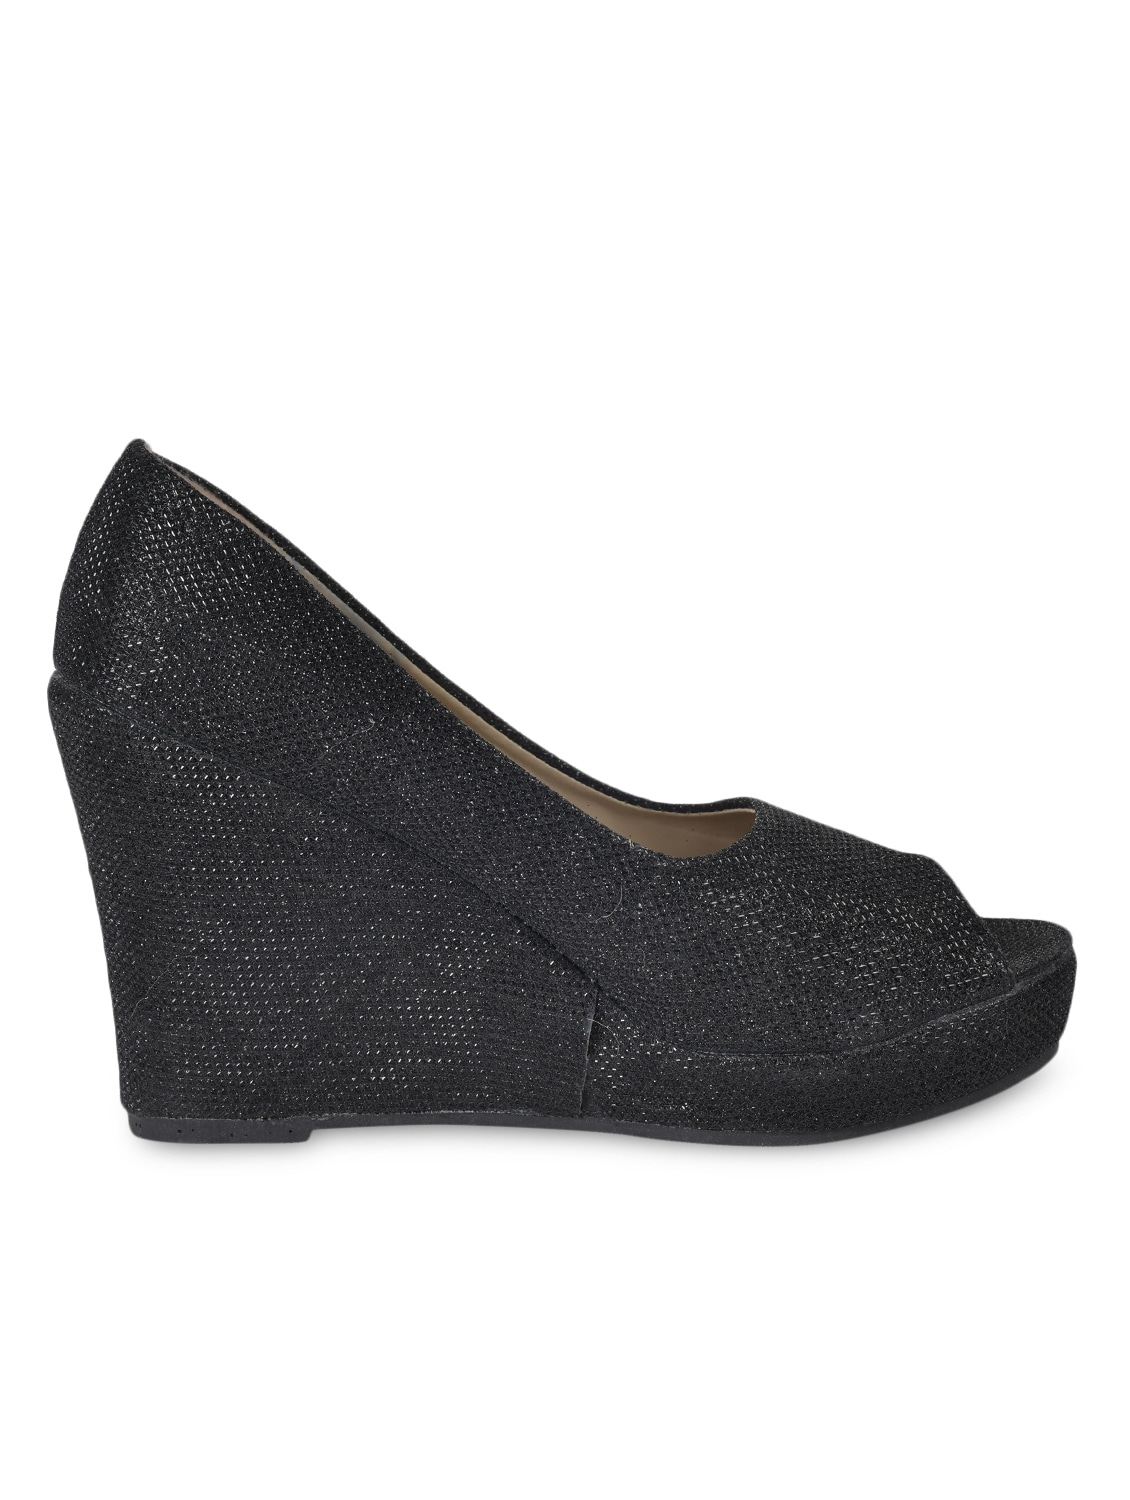 Textured Black Peep Toe Wedges - Flat N Heels